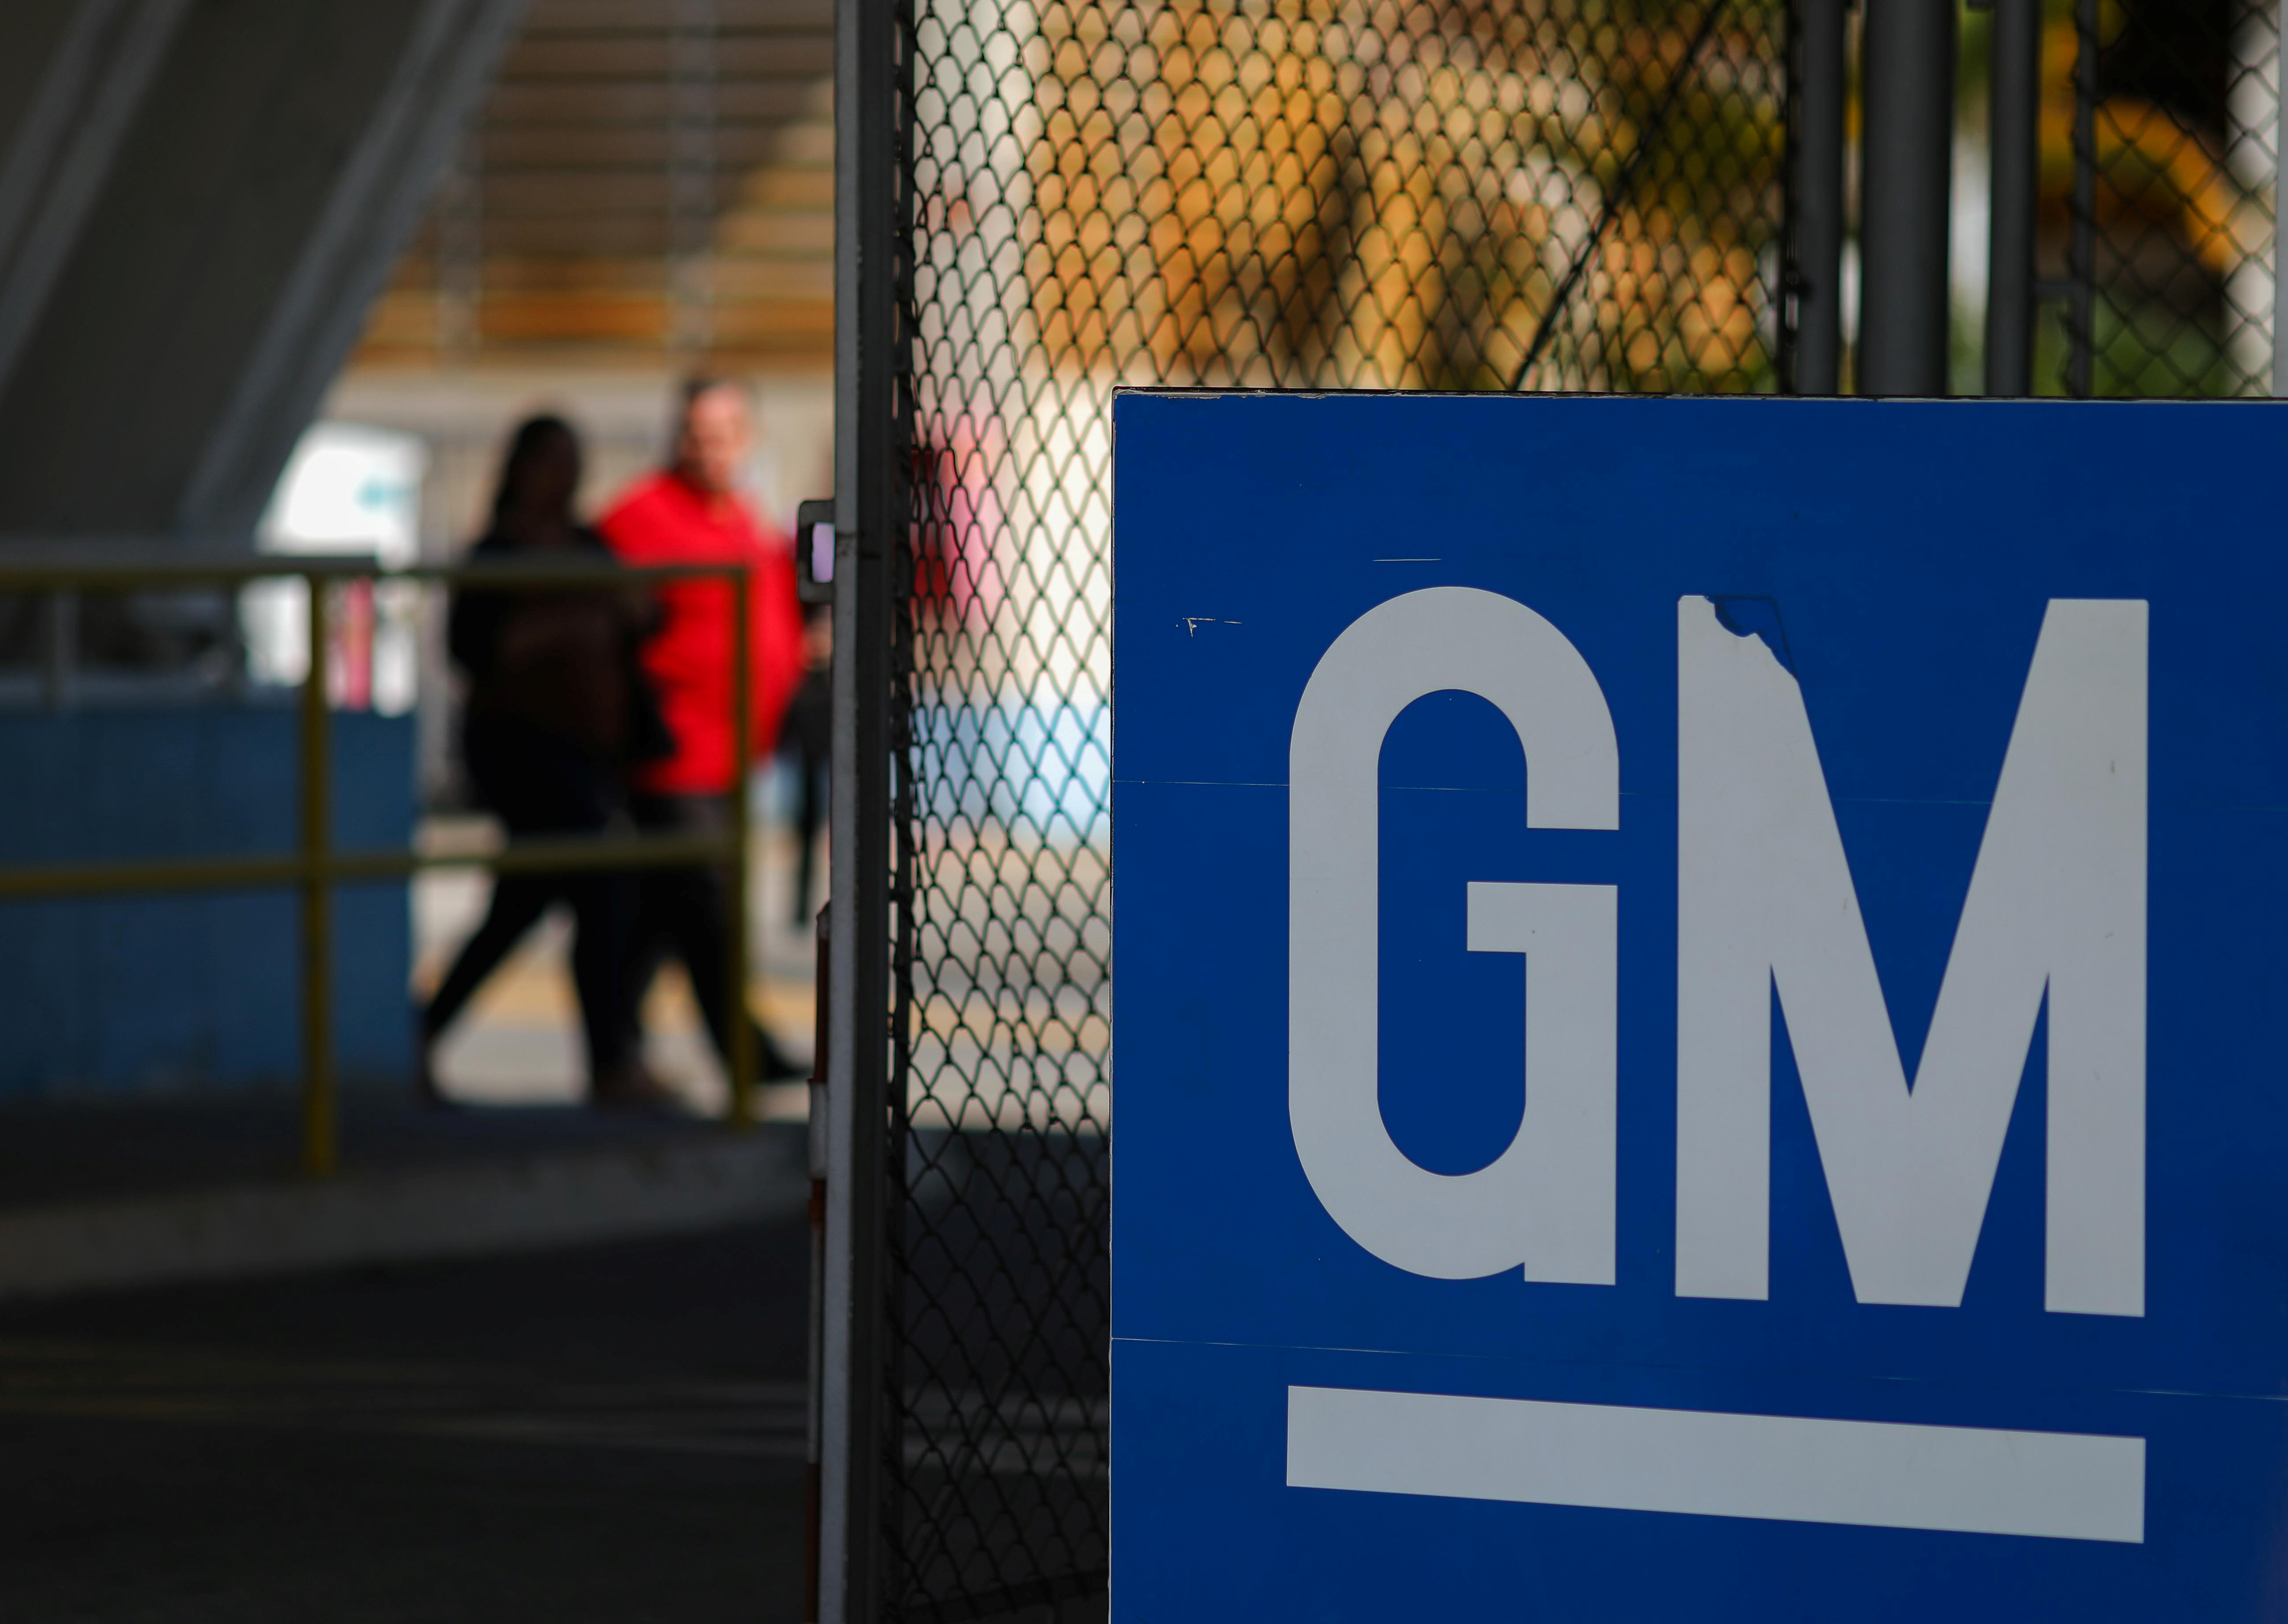 The GM logo is seen at the General Motors plant in Sao Jose dos Campos, Brazil, January 22, 2019. REUTERS/Roosevelt Cassio